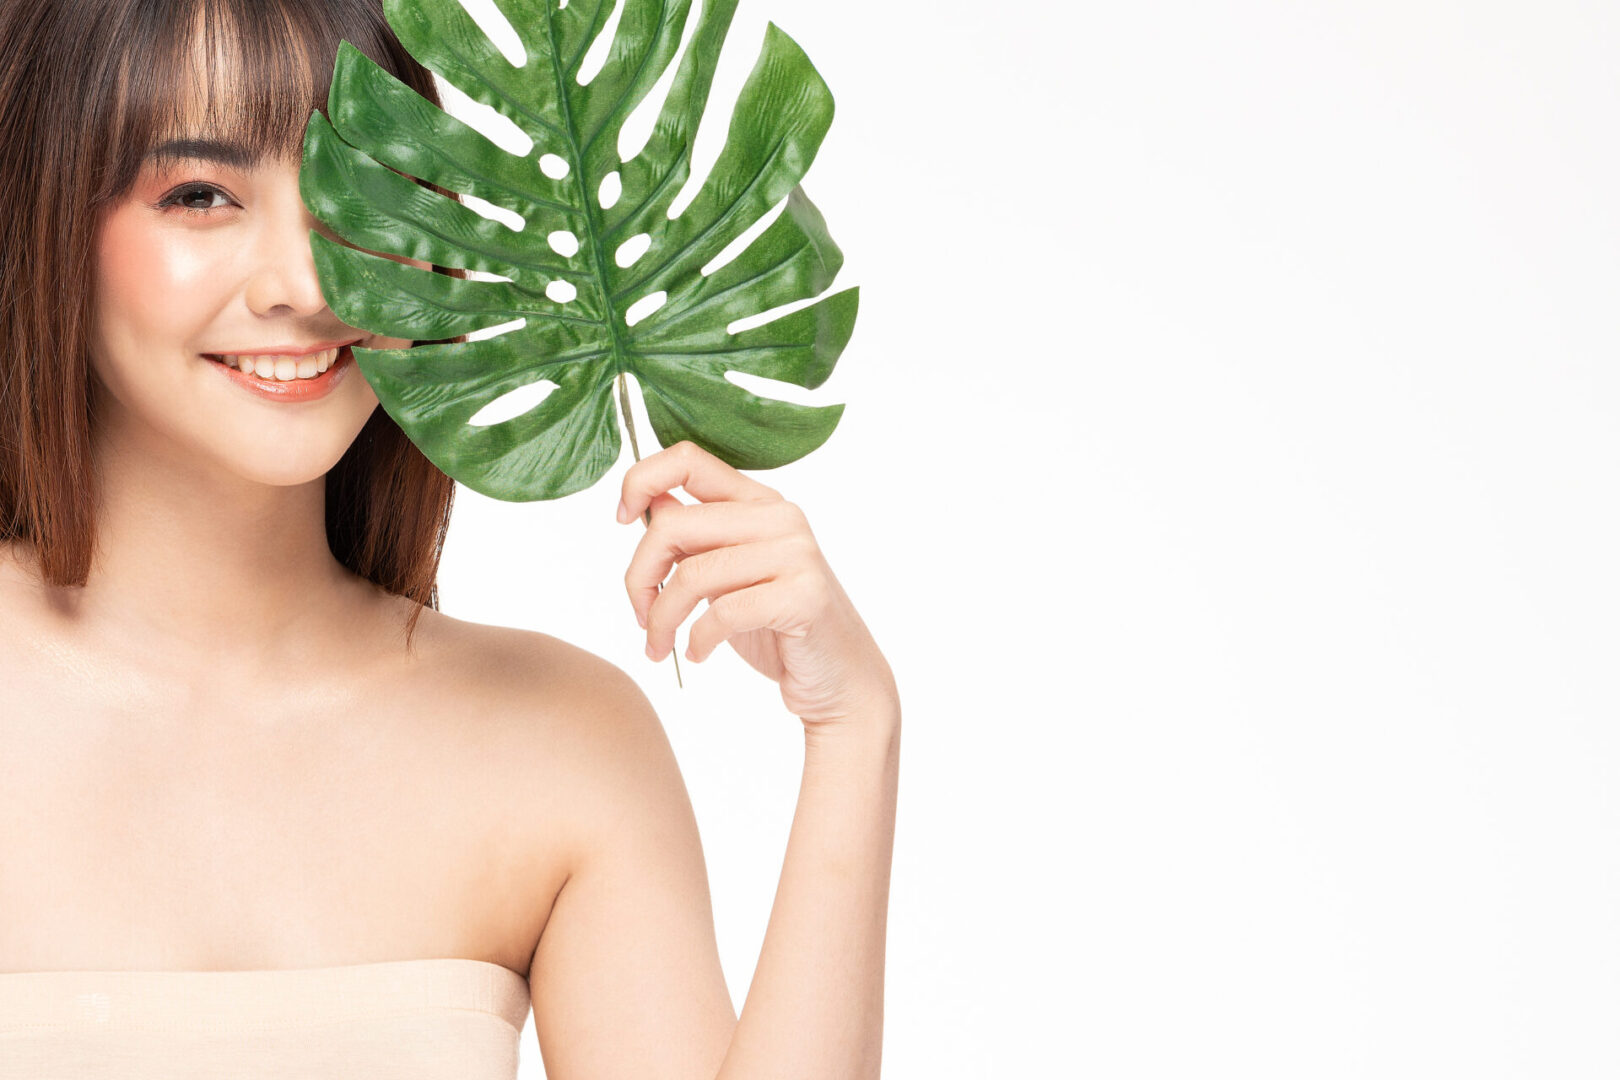 Beauty asian women  touching soft cheek portrait face with natural skin and skin care healthy hair and skin close up face beauty portrait.Beauty Concept on white background.